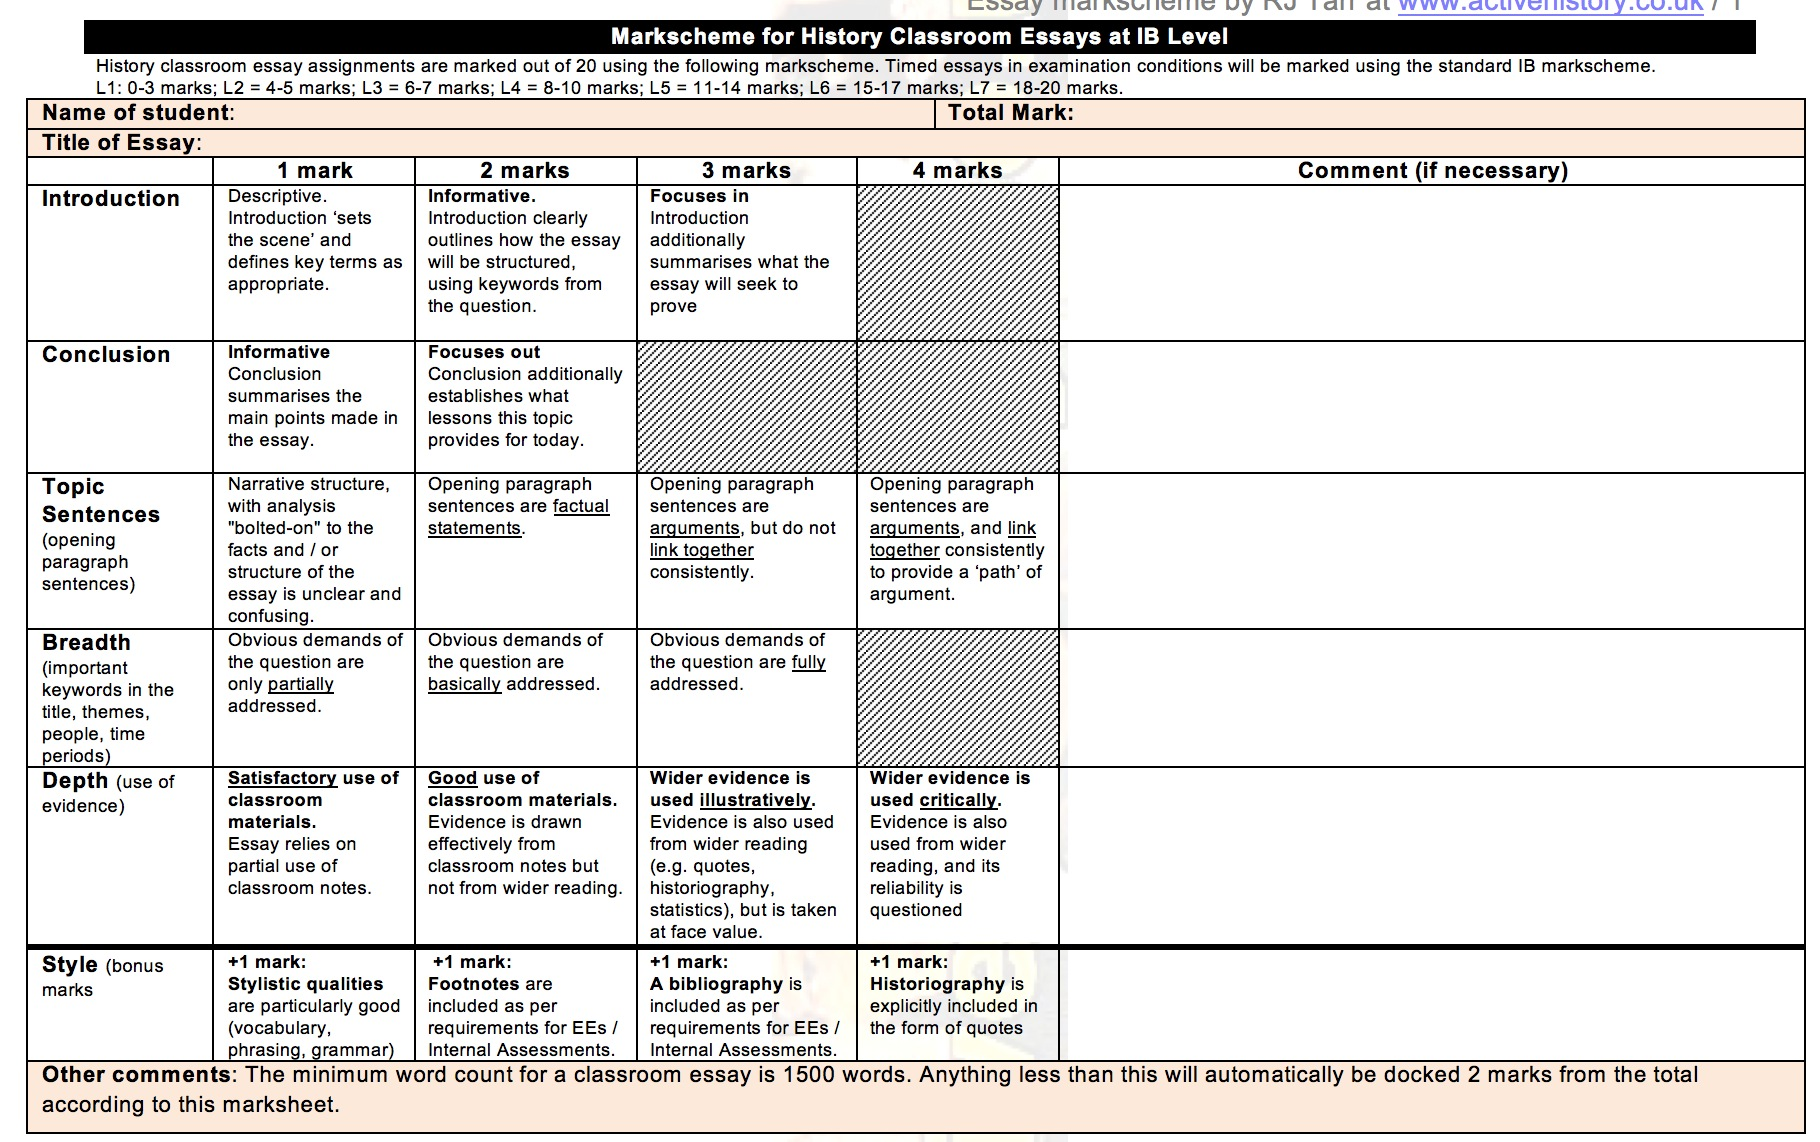 rubric grids essay marking made easy tarr s toolbox overview